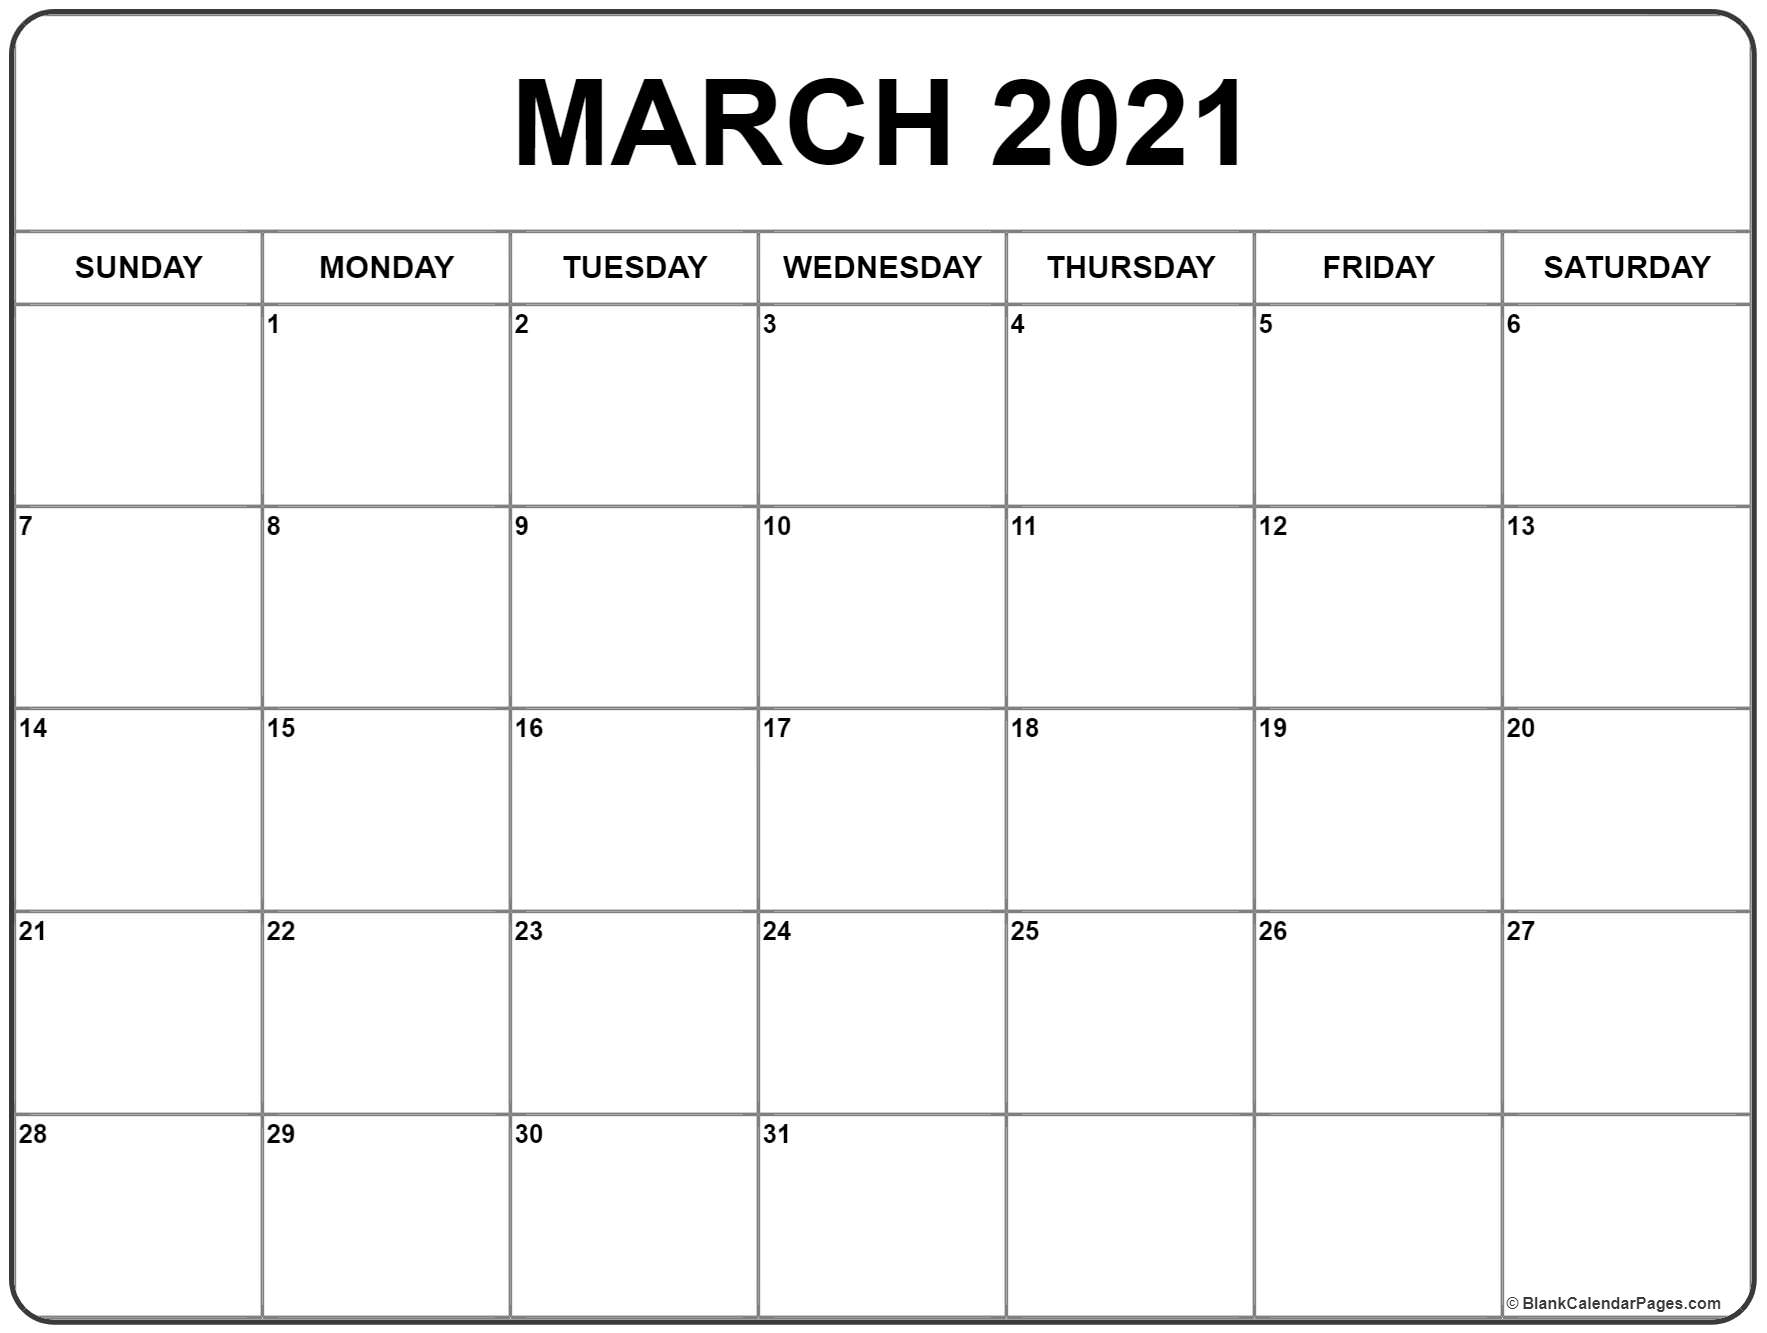 April 2021 And March 2021 Calendar Printable | Free 2021 ...